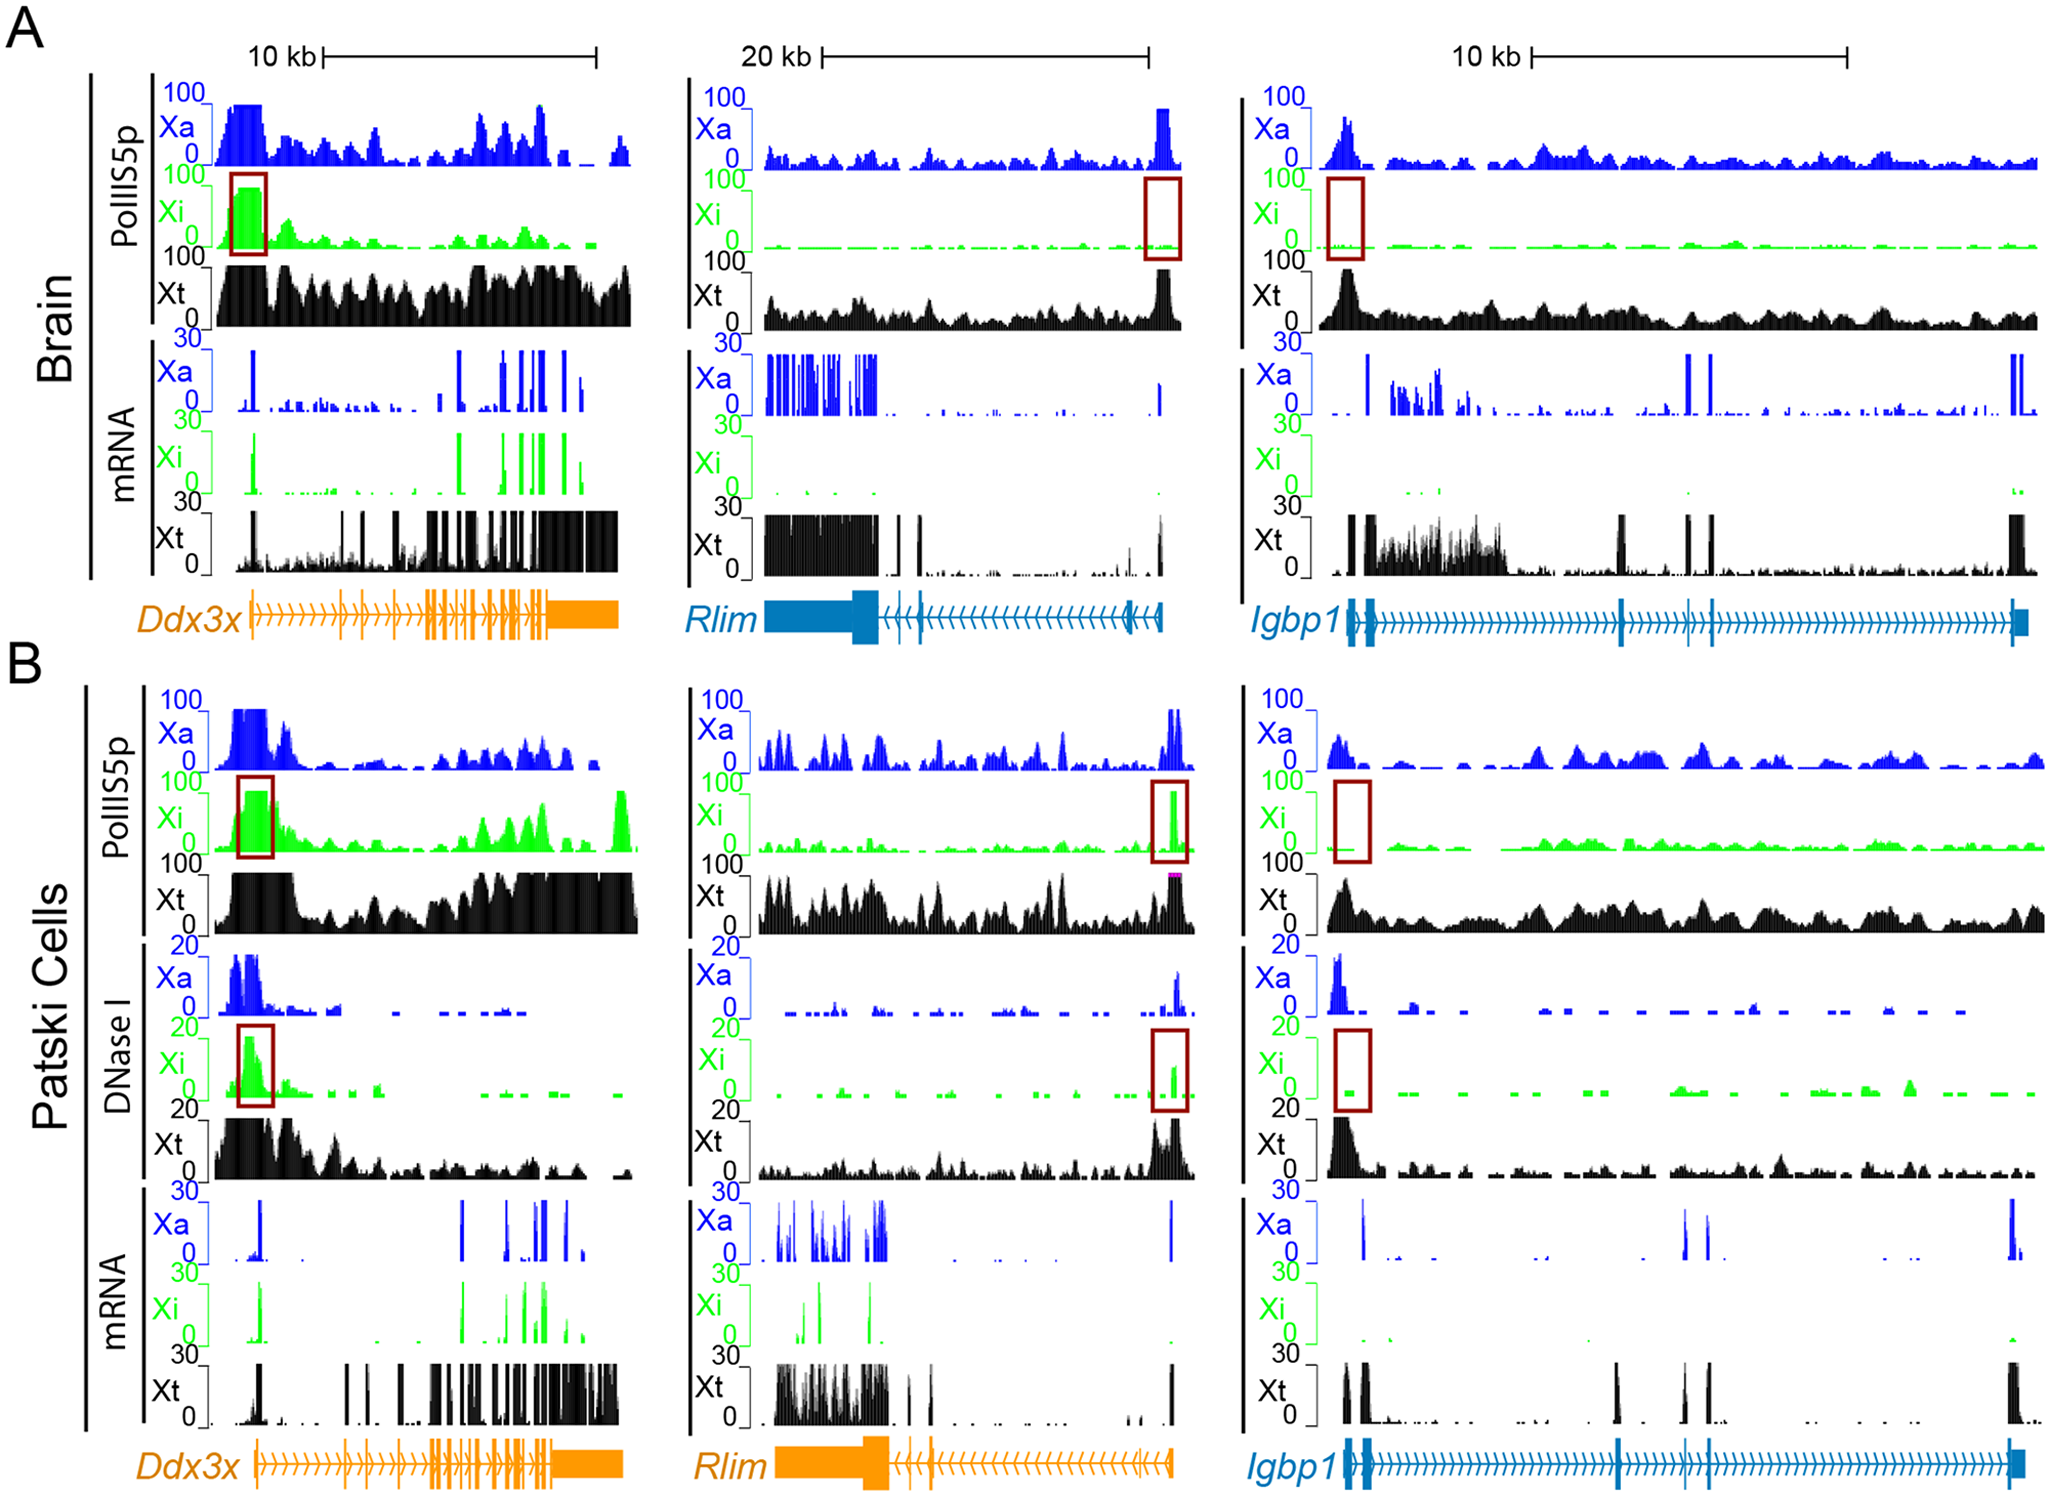 Enrichment in PolII-S5p and DNase I hypersensitivity on the Xi allele at escape genes.